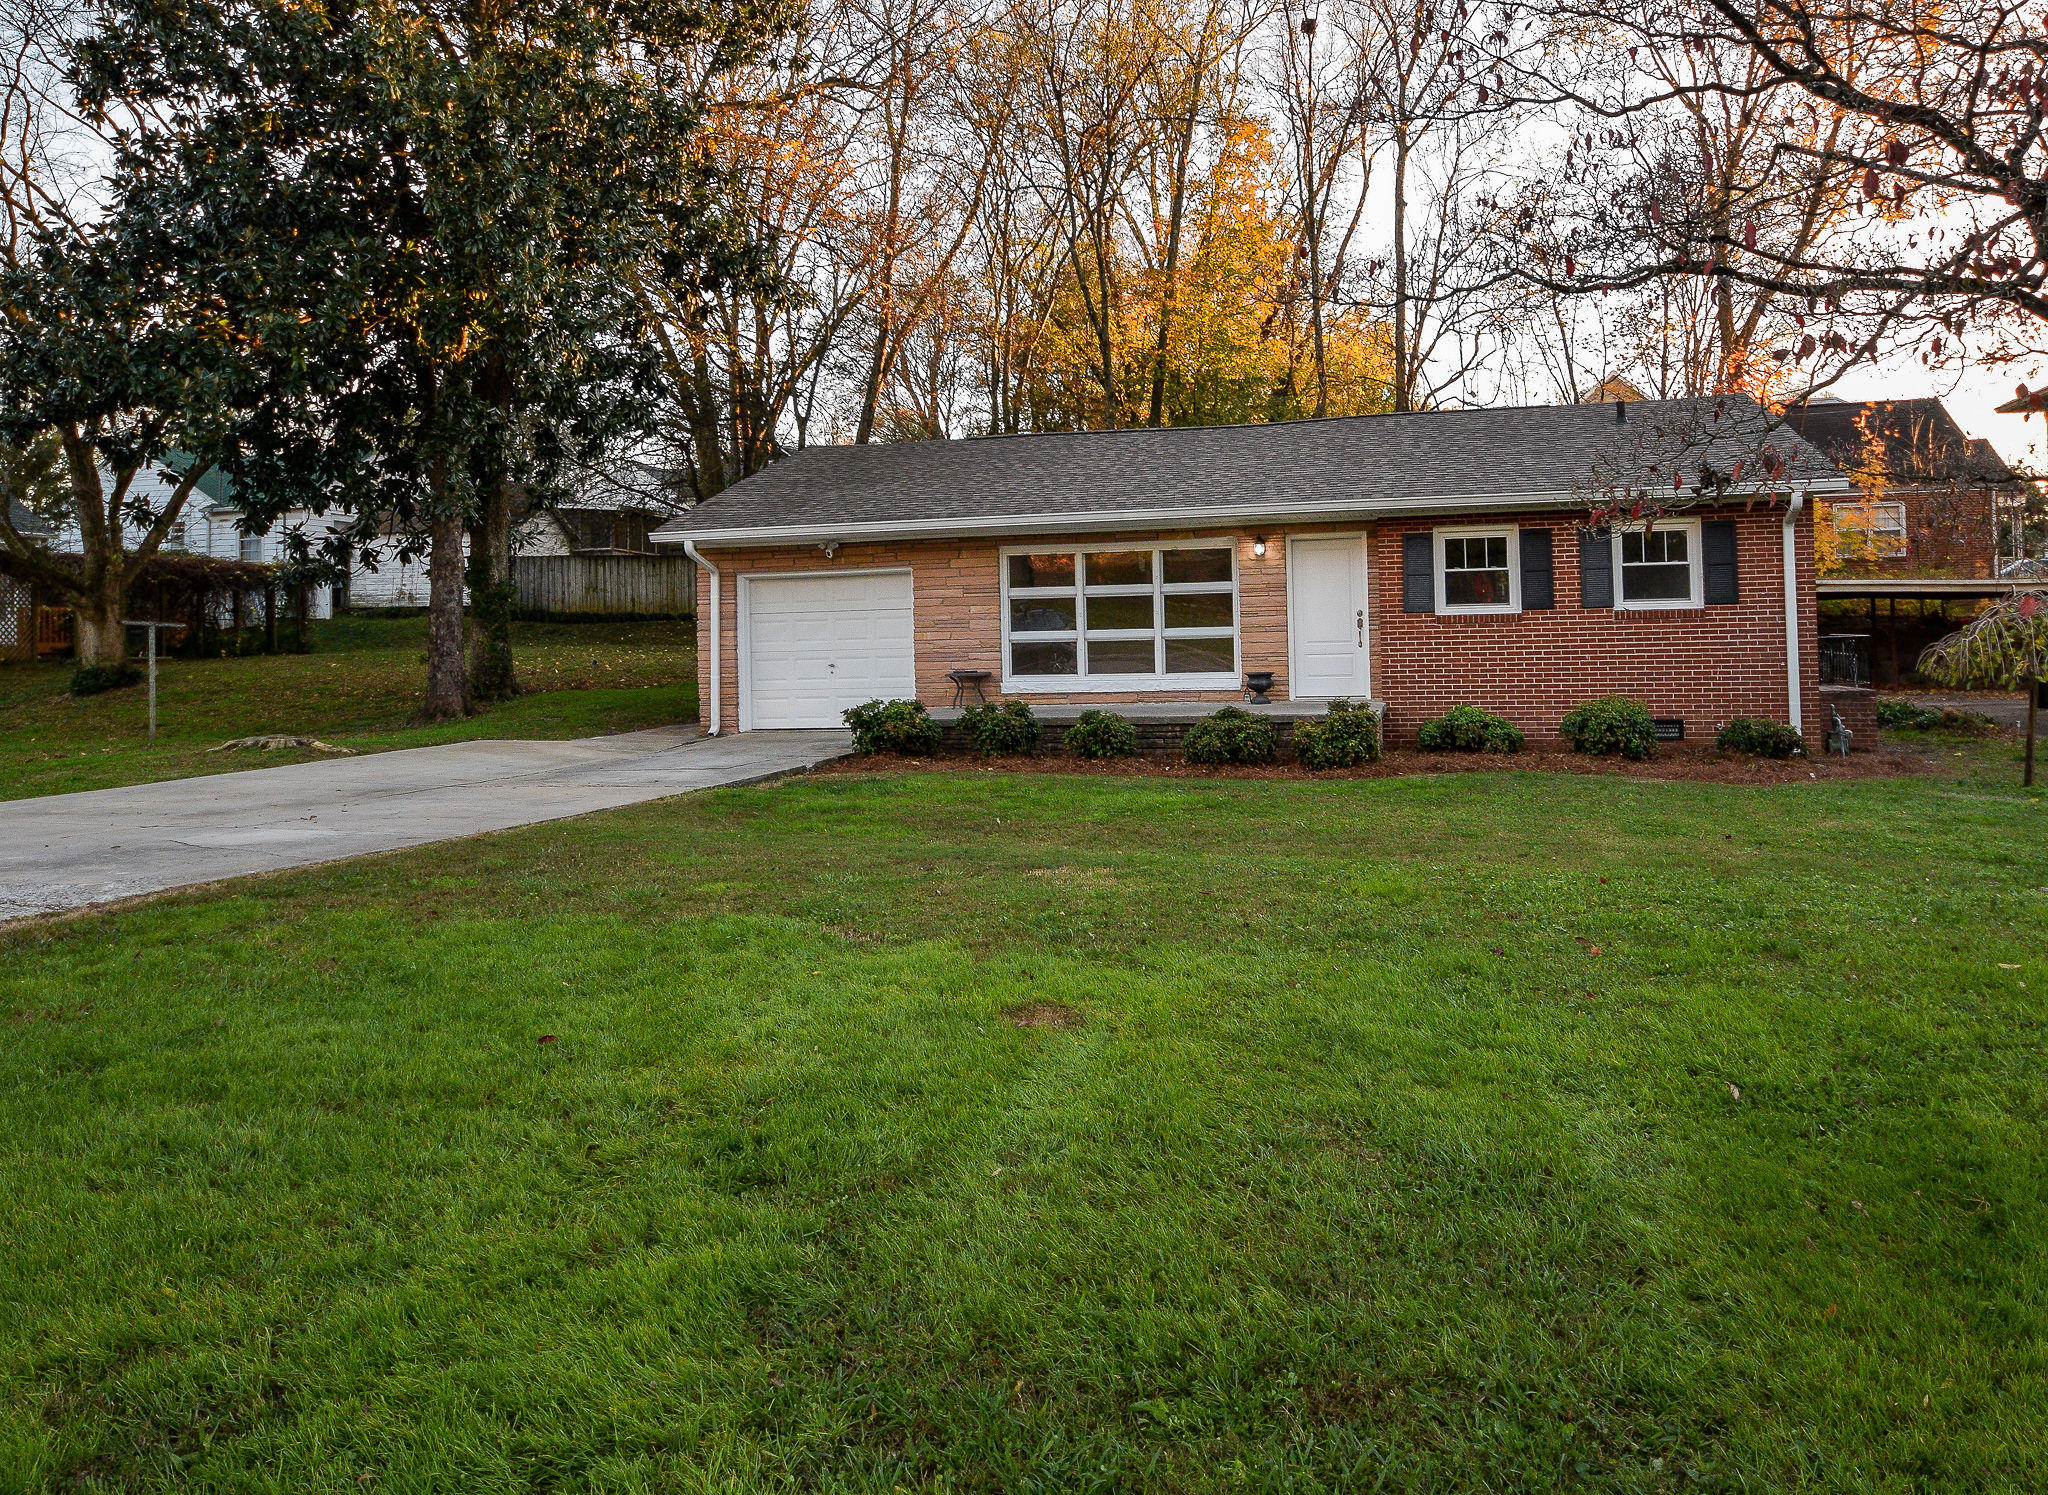 615 Nw Willow Street St, Cleveland, TN 37311